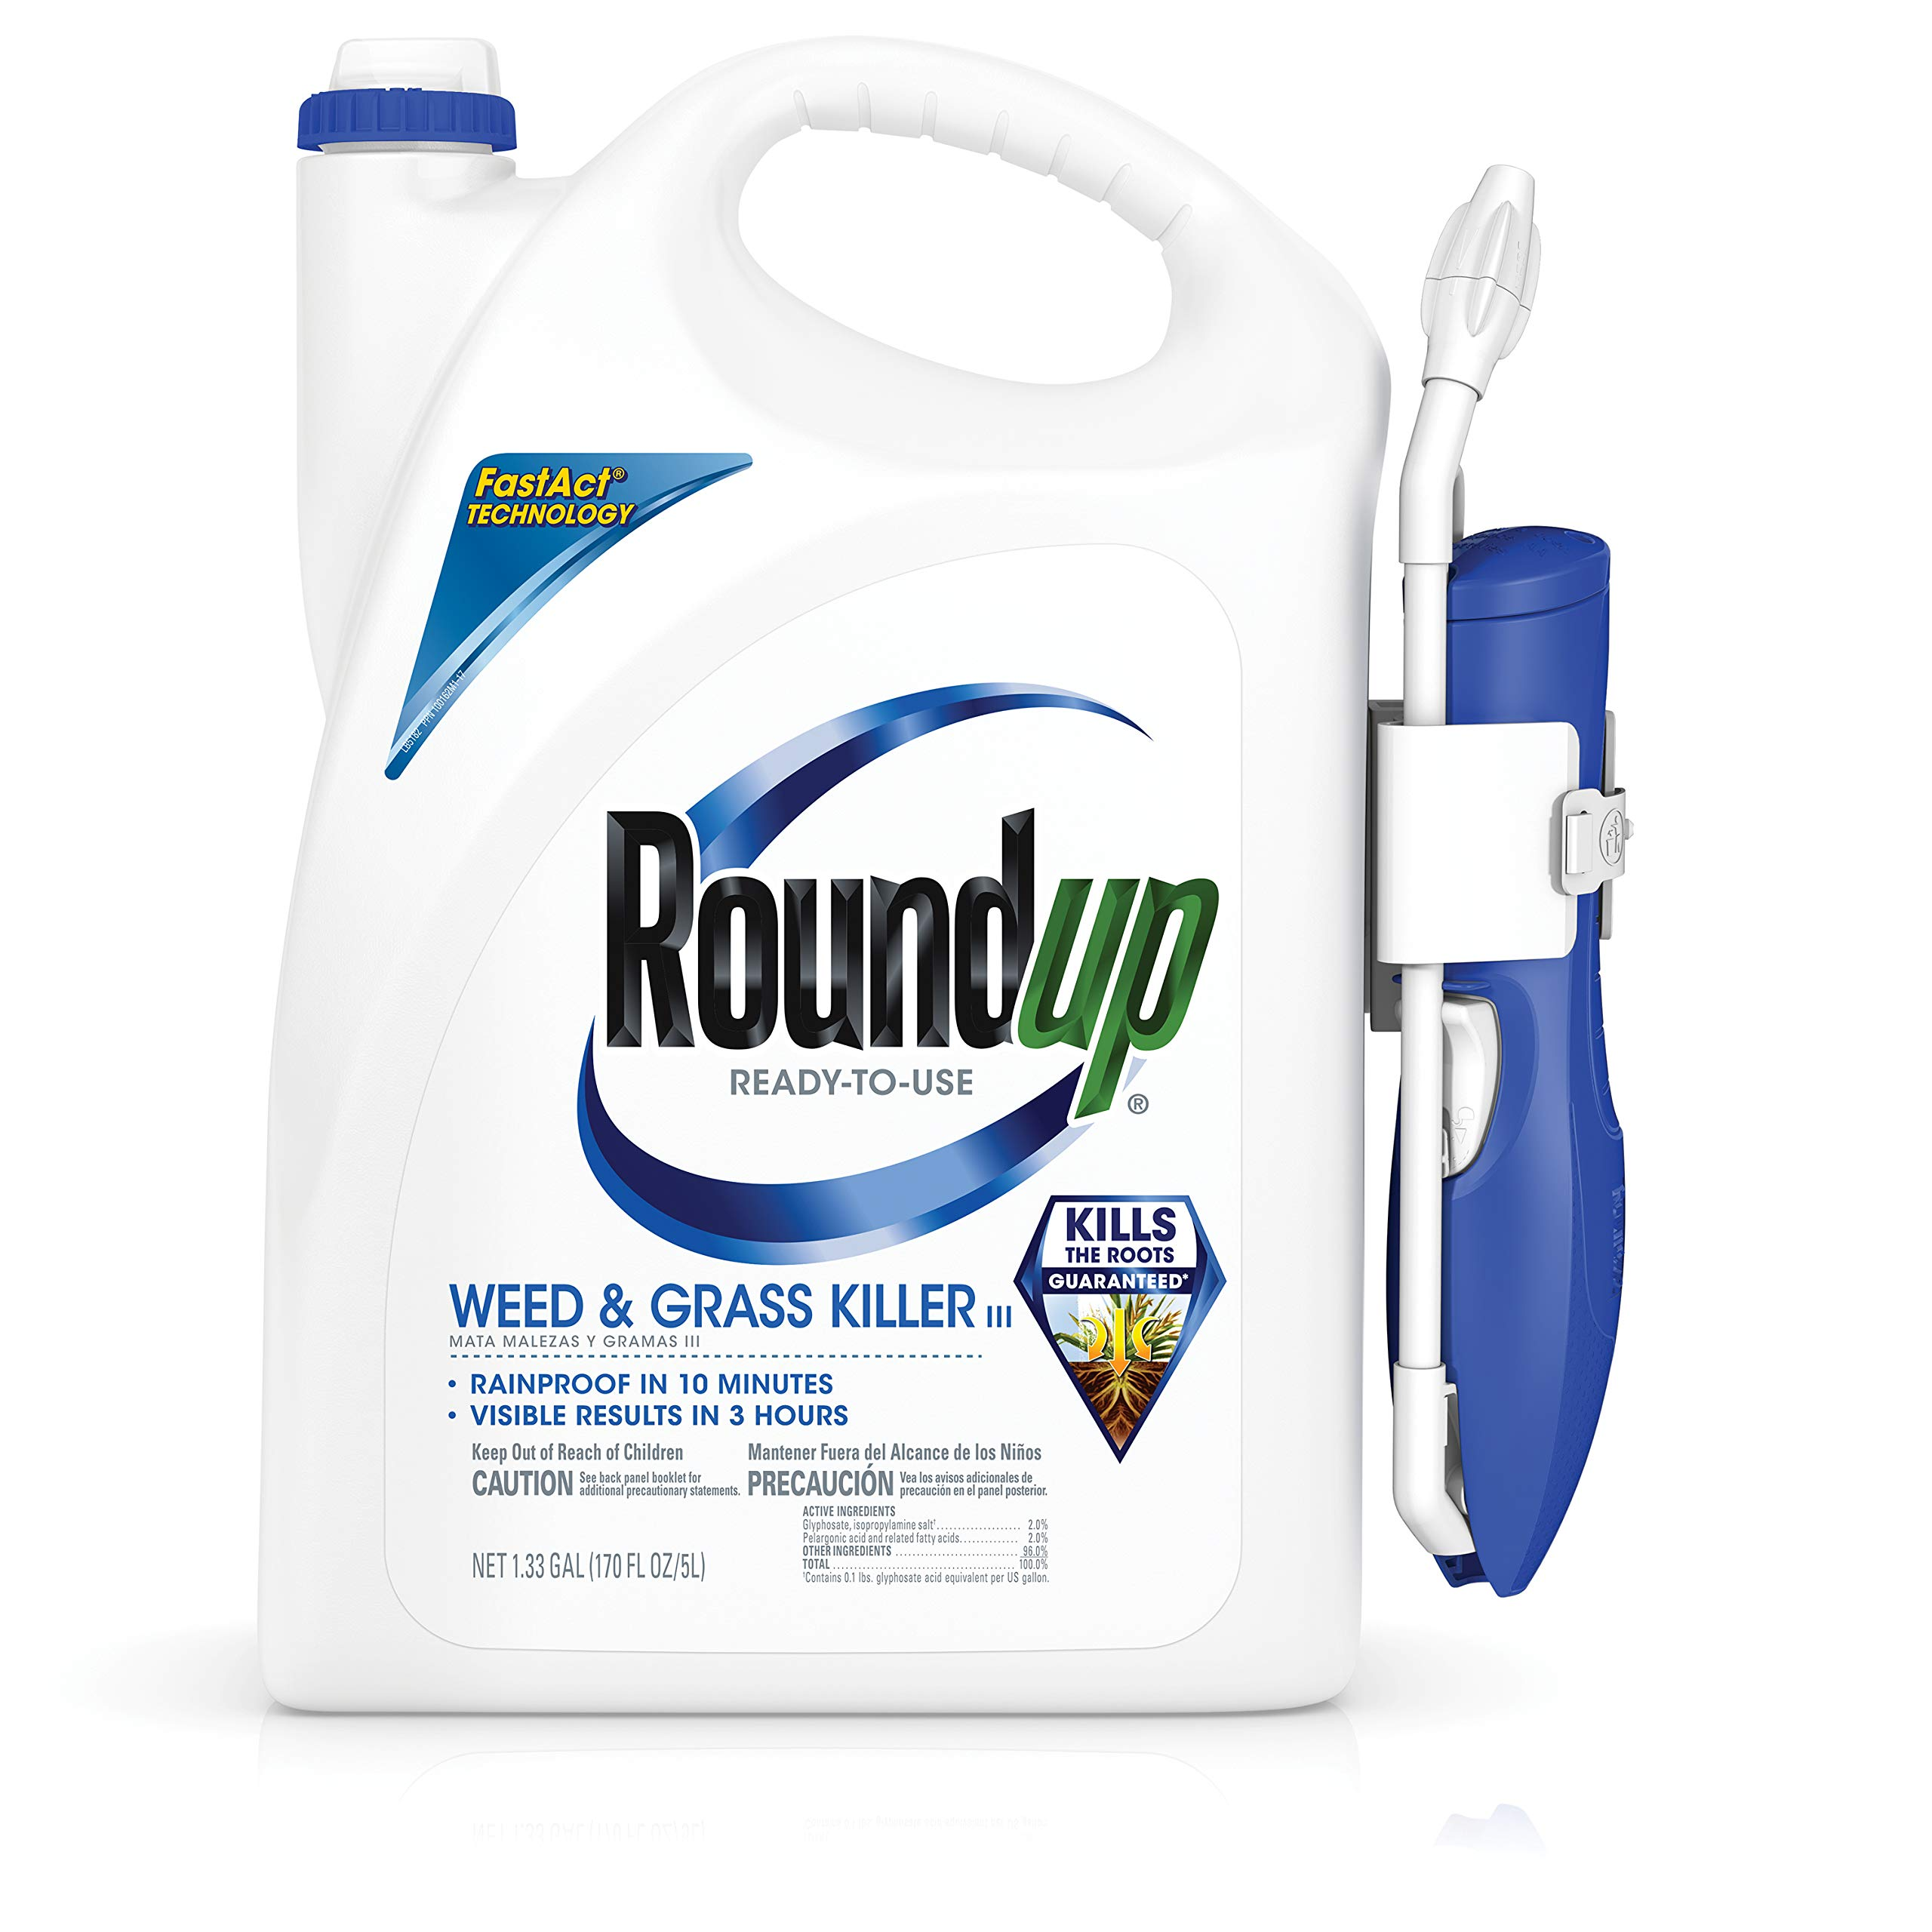 RoundUp 5200210 Ready-to-Use Weed & Grass Killer III with Comfort Wand, 1.33 GAL